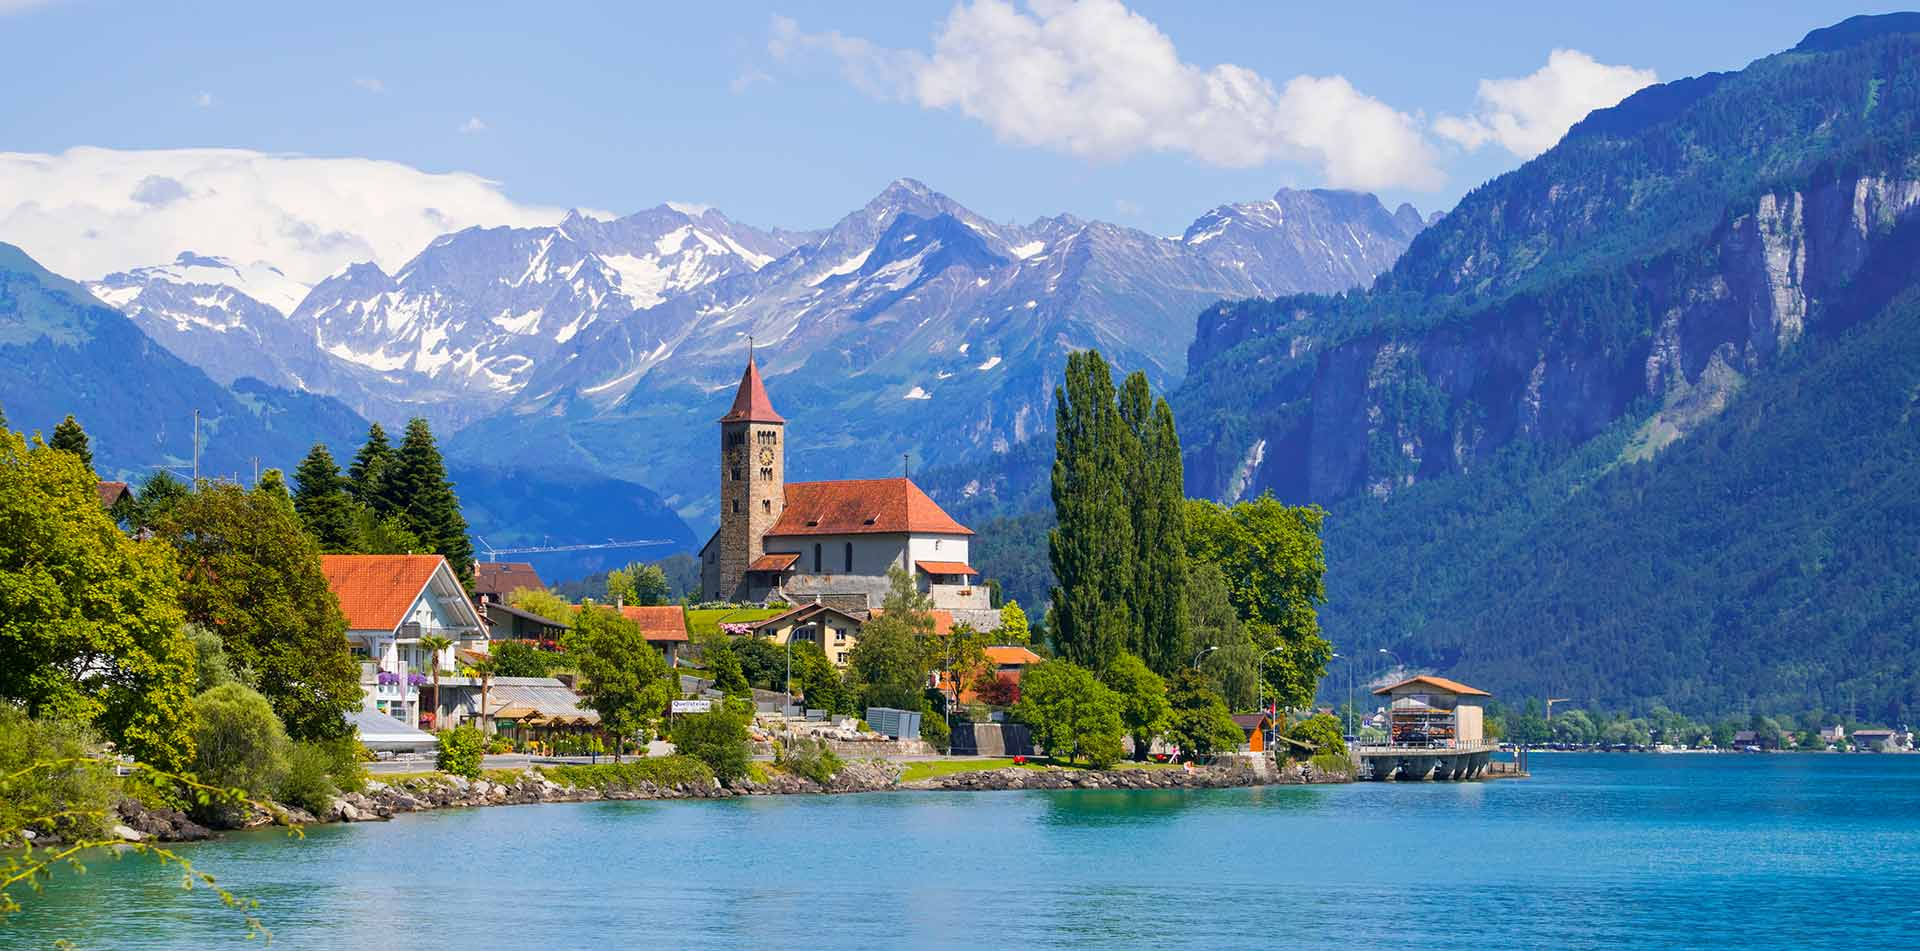 Panoramic view of Brienz town on lake, Swiss Alps